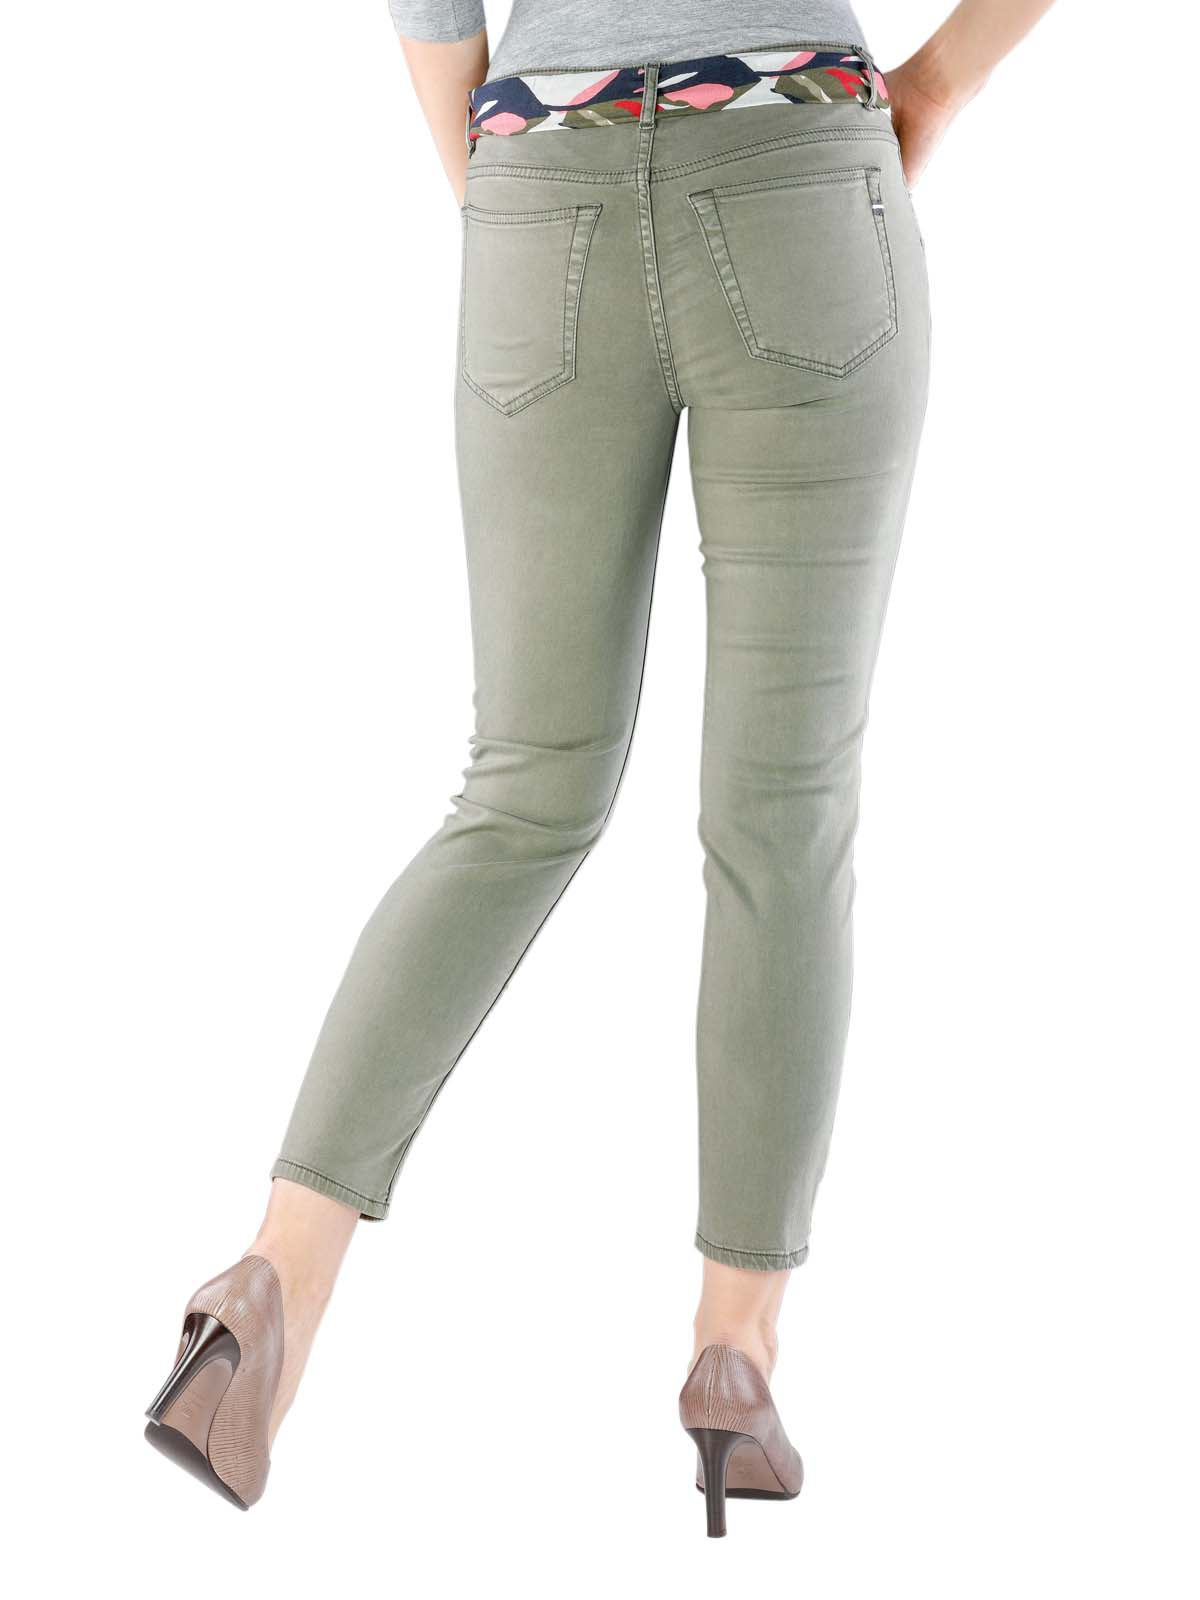 new appearance coupon code outlet online Marc O'Polo Lulea Slim Jeans burnt olive Marc O'Polo Women's ...